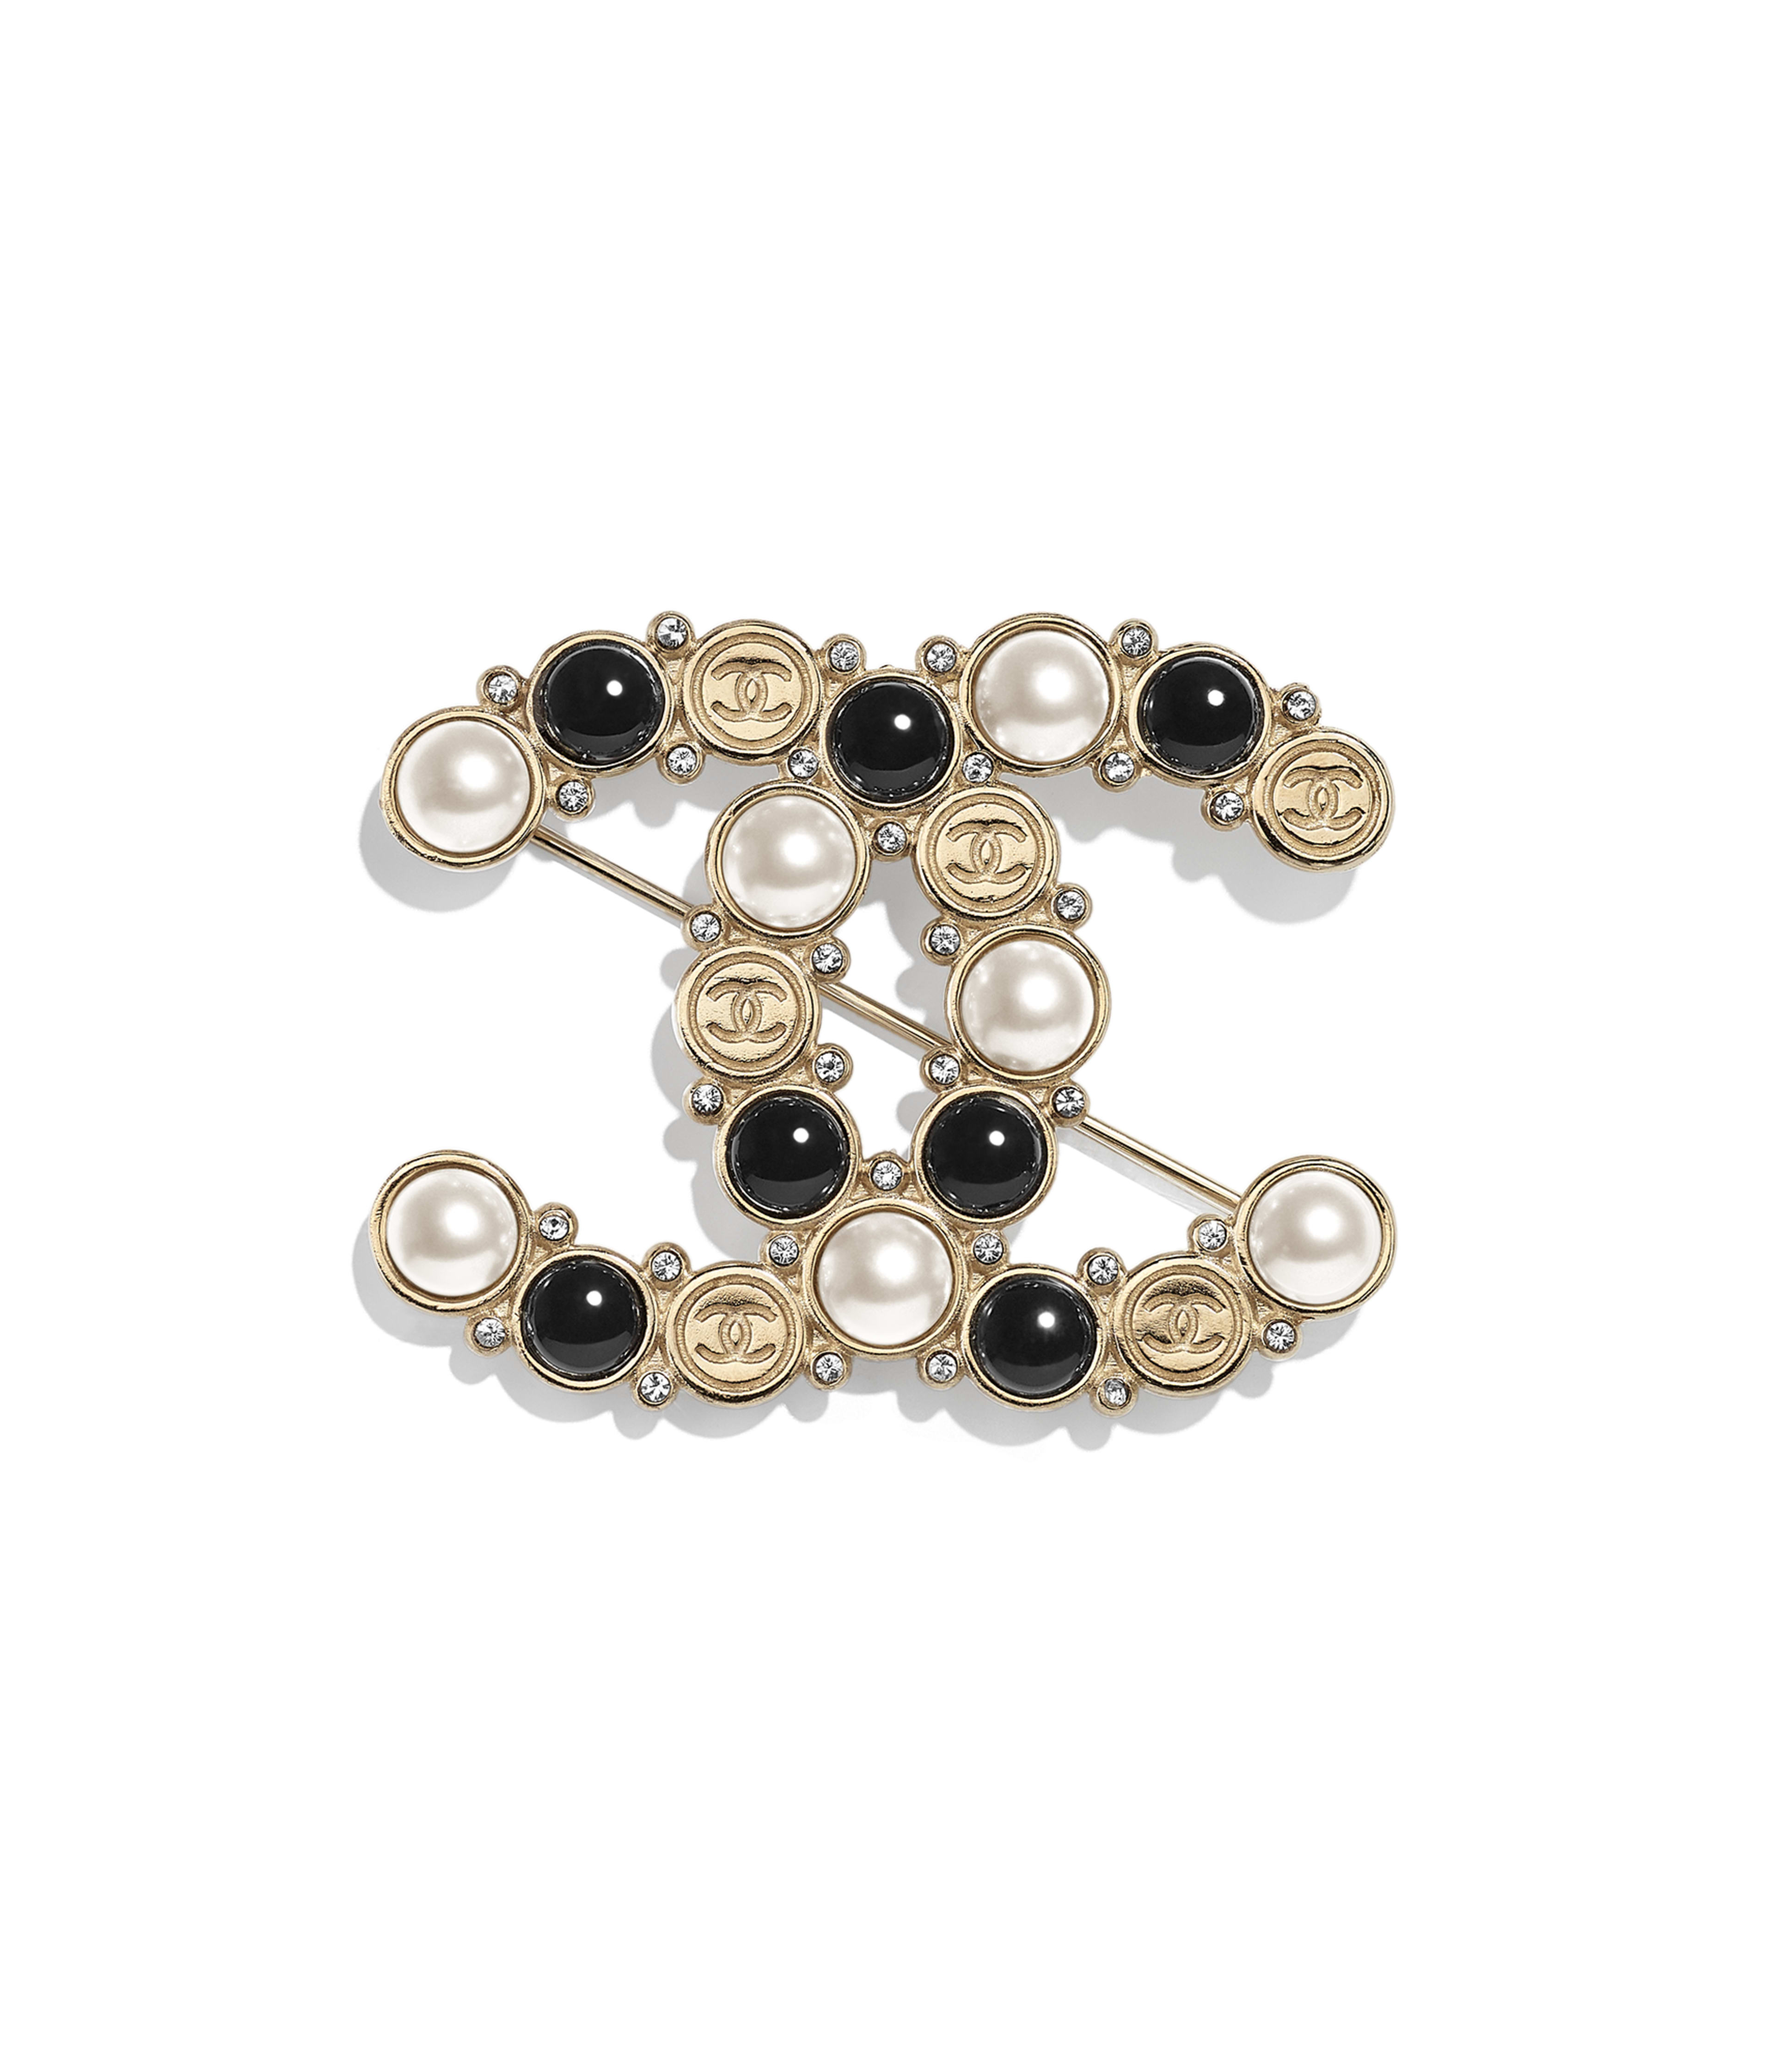 5f1d4160f21 Brooch Metal, Glass Pearls, Imitation Pearls & Strass, Gold, Pearly White,  Black & Crystal Ref. AB2354Y47807Z9232